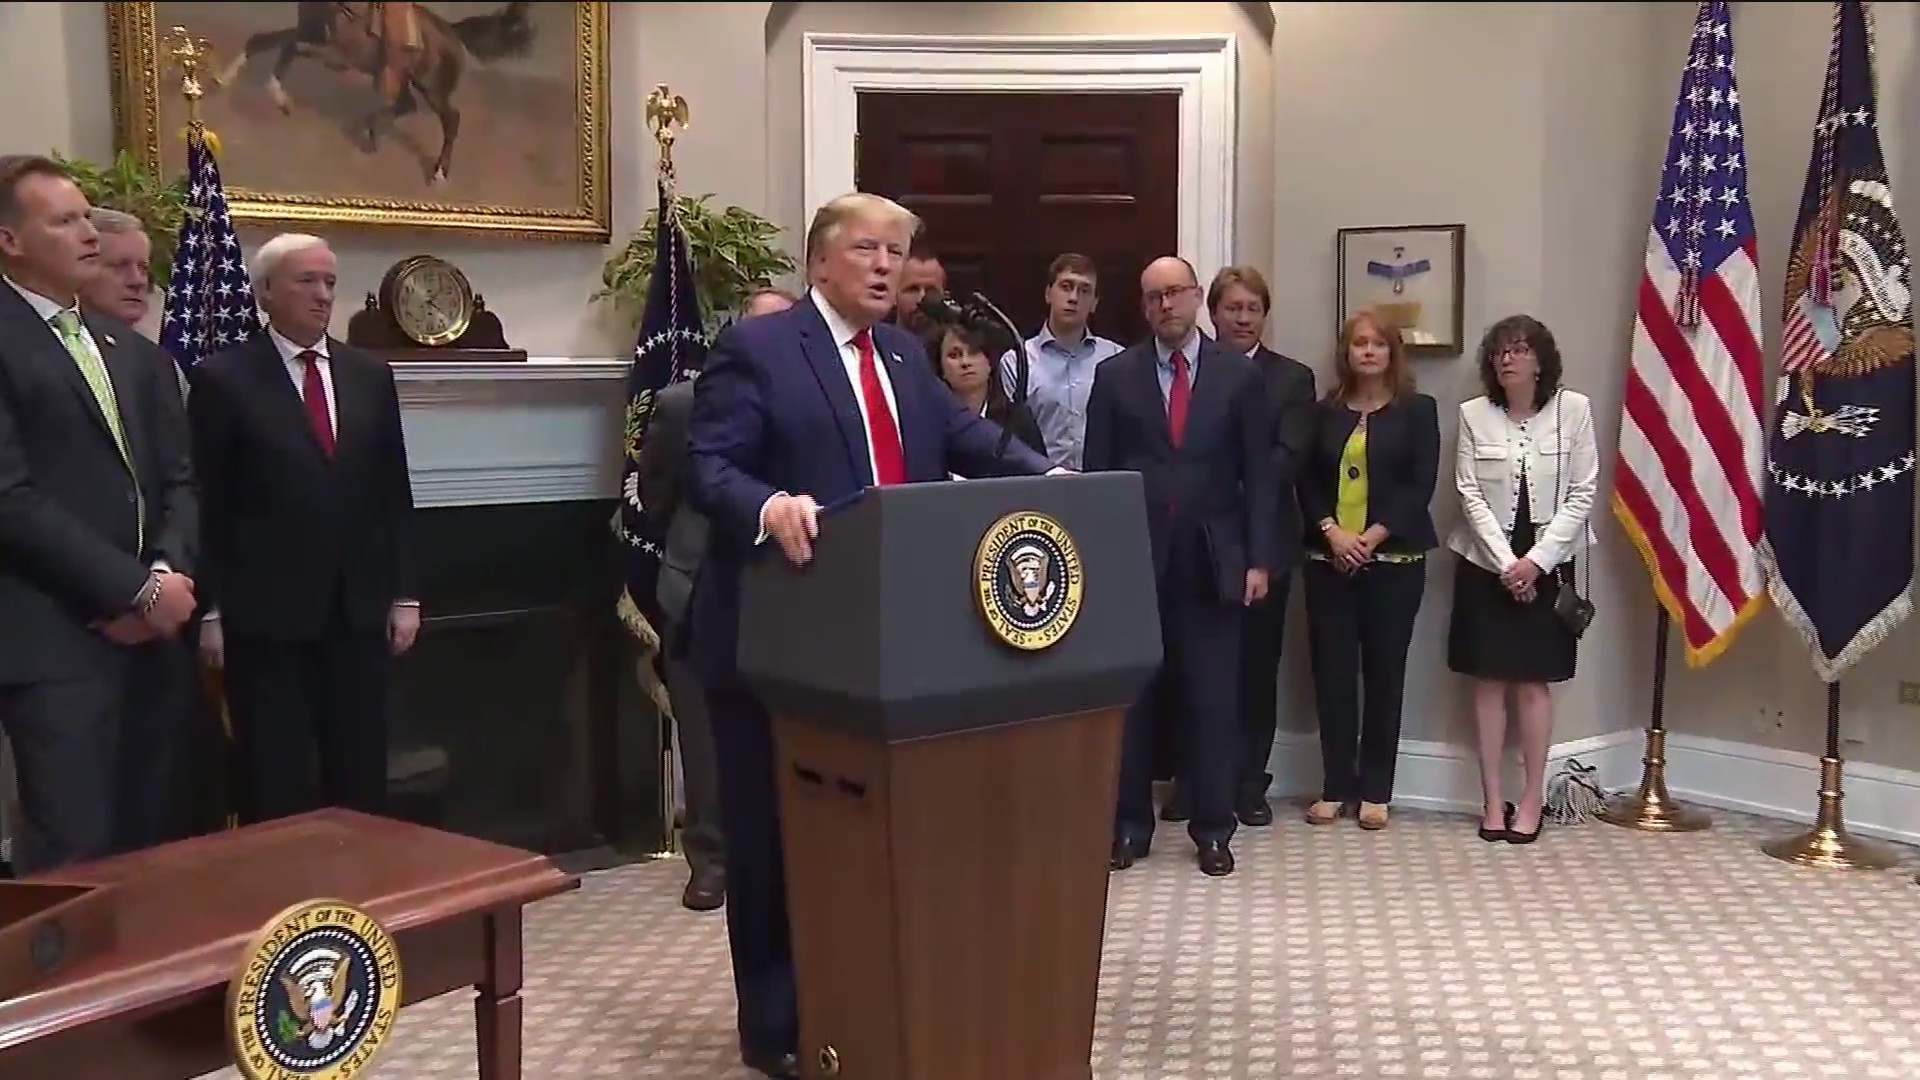 President Trump talking